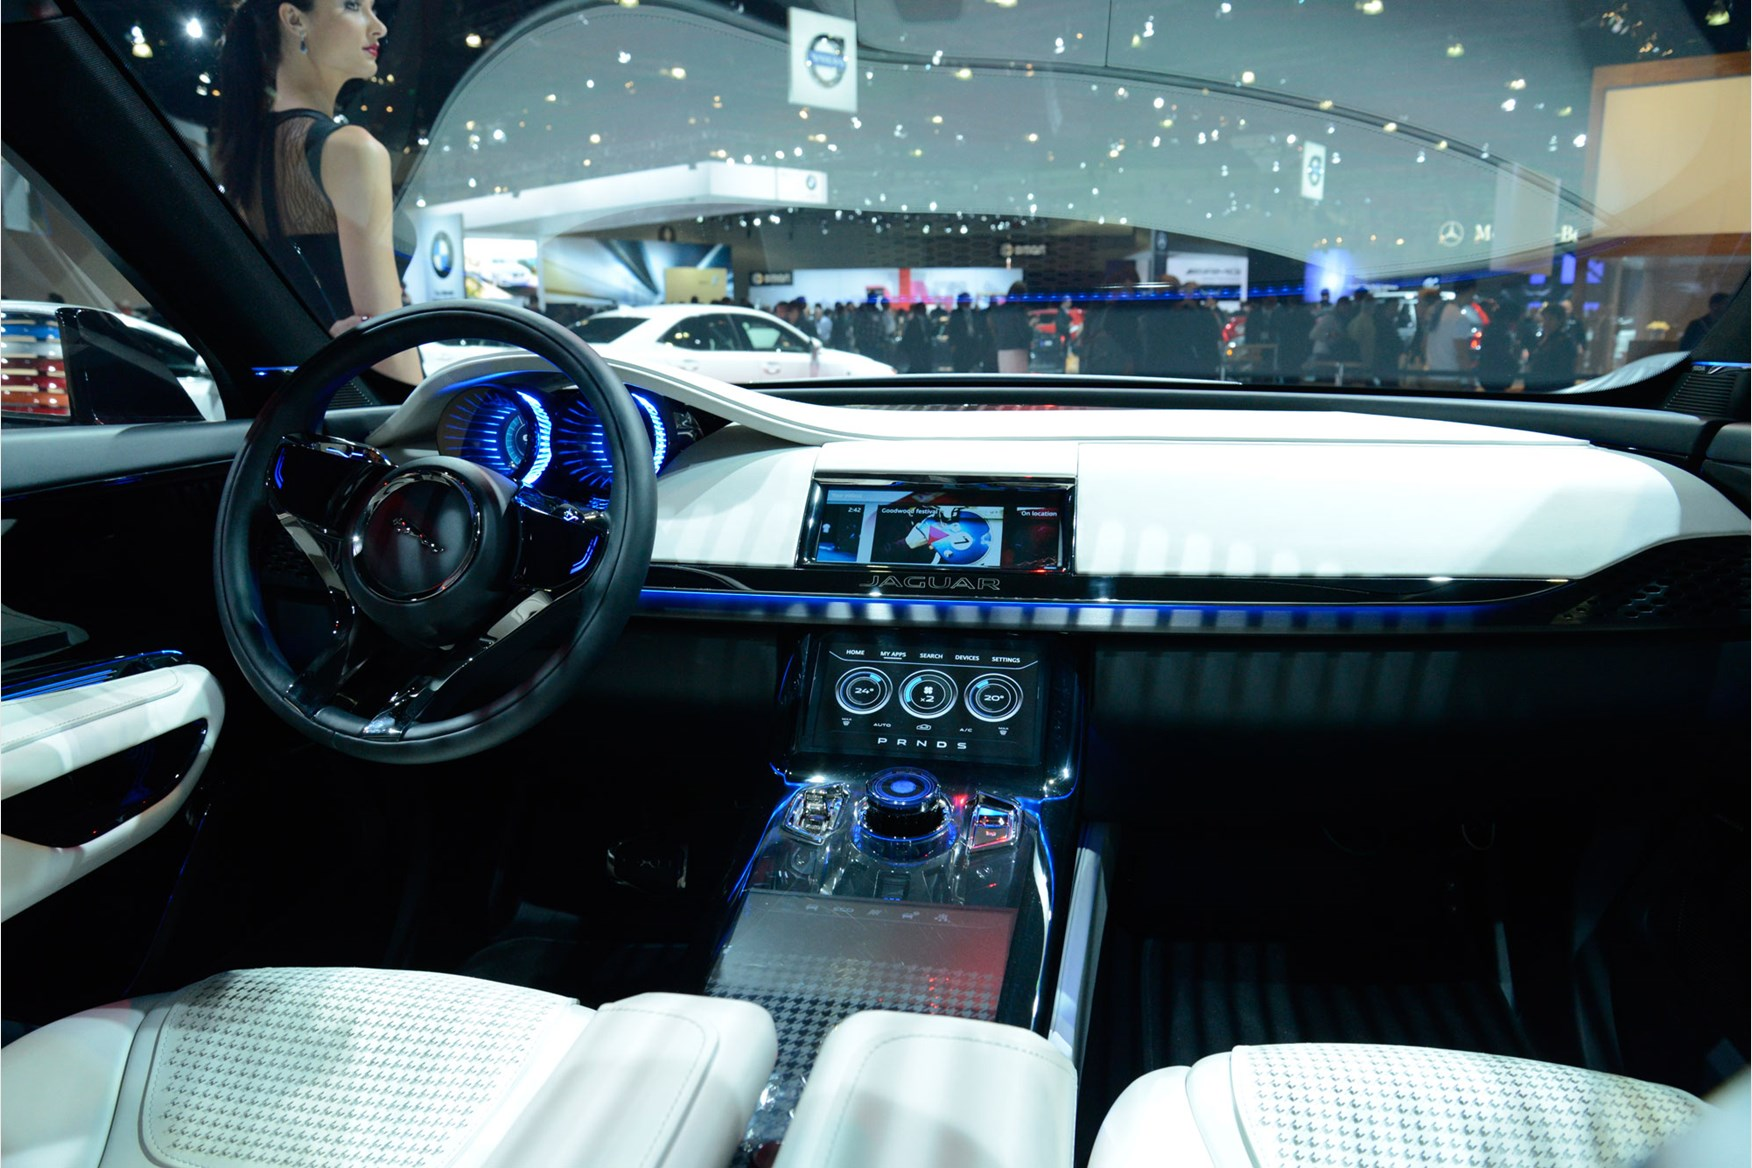 2018 jaguar f pace interior. interesting 2018 interior far more dramatic but twodial instrument layout has been  retained probably without the striking lighting decoration though jaguar f pace for 2018 jaguar f pace e